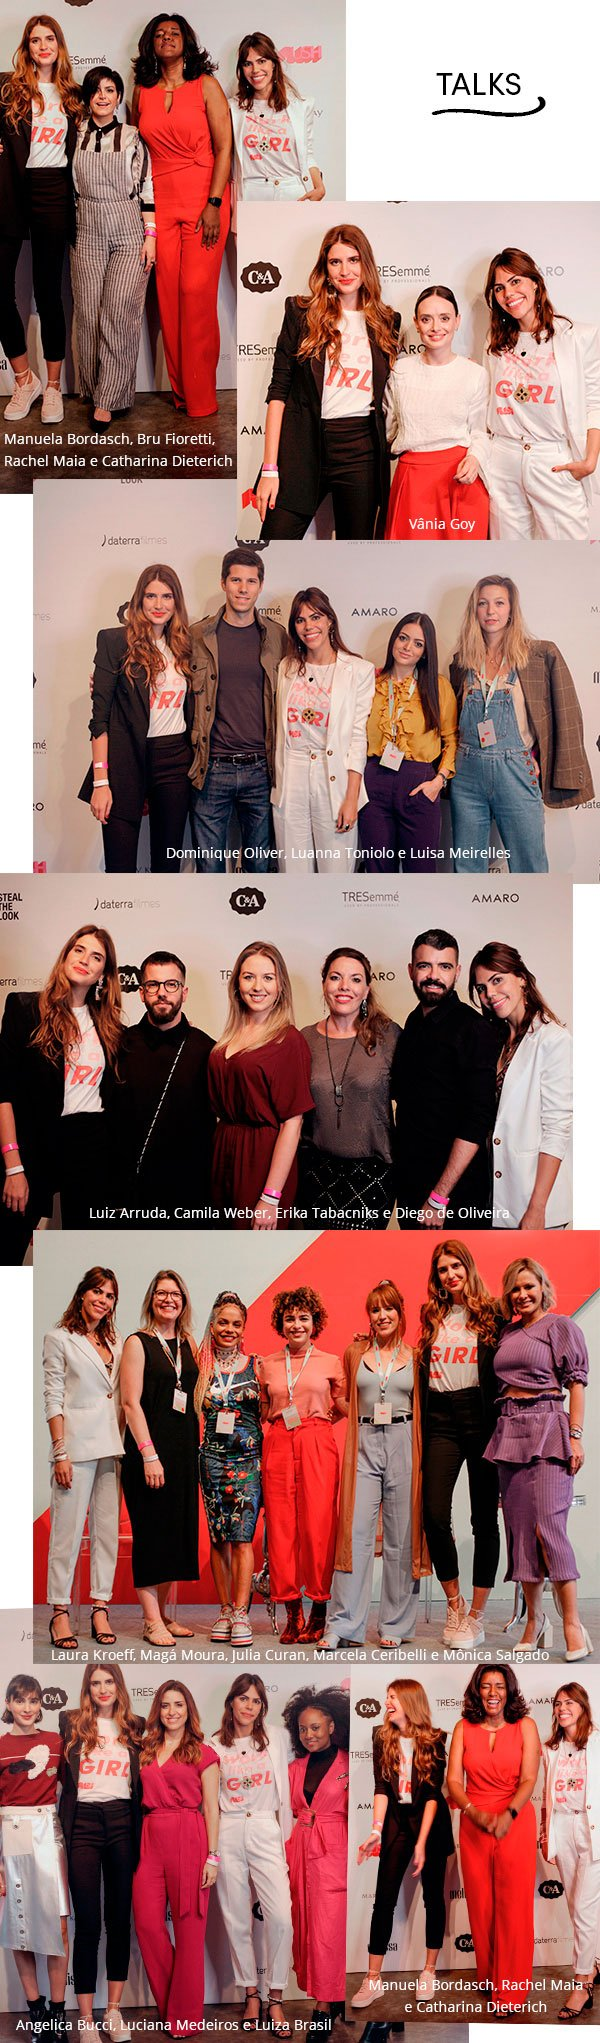 talks - push - looks - moda - evento